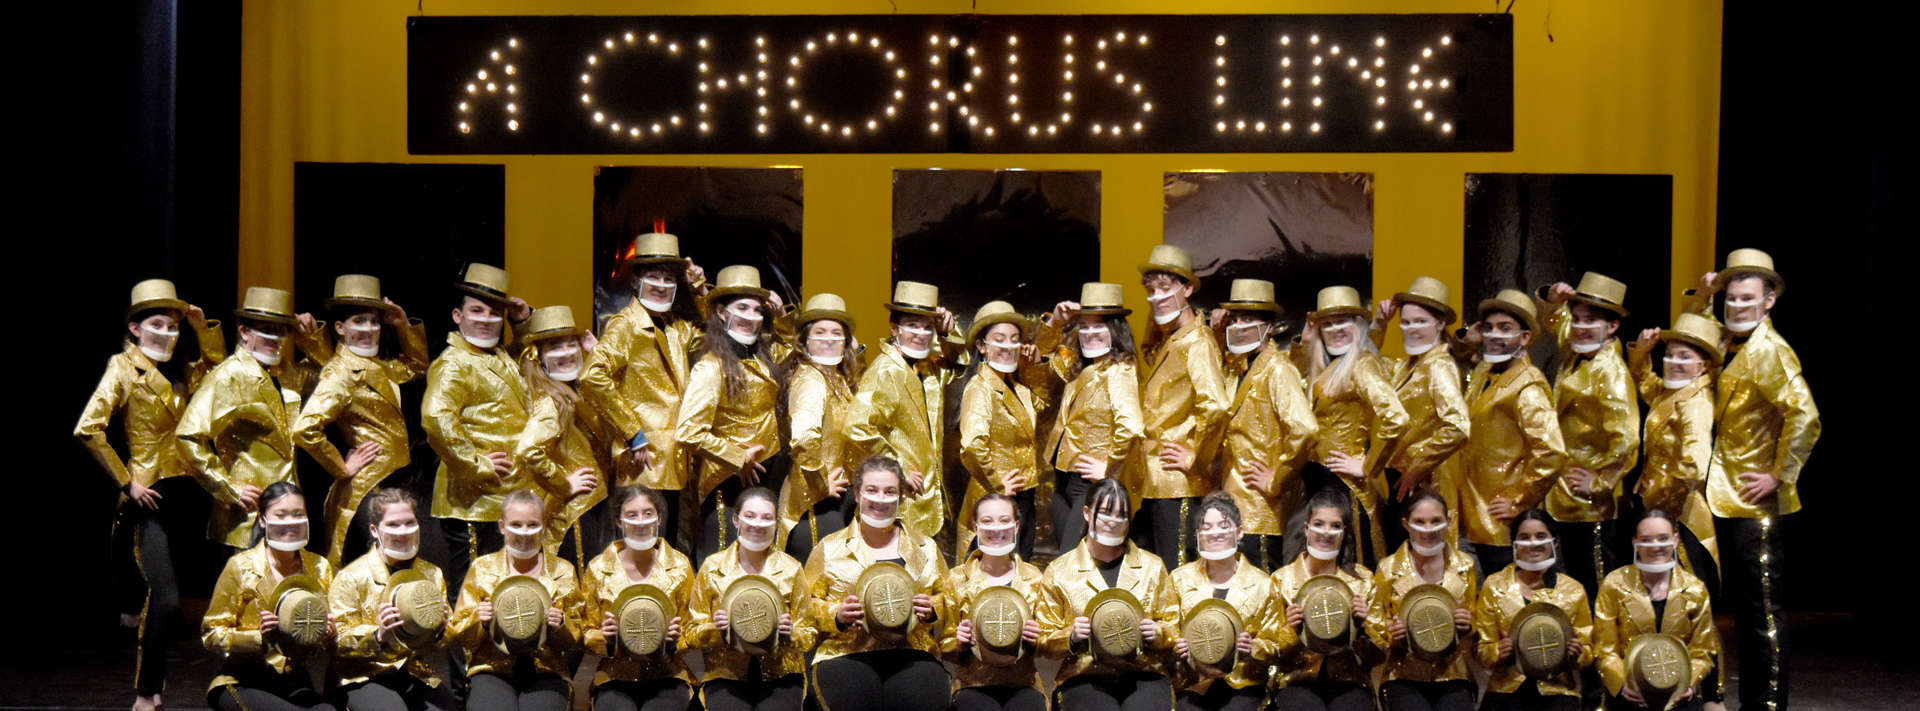 Student performers in gold jackets on stage in A Chorus Line